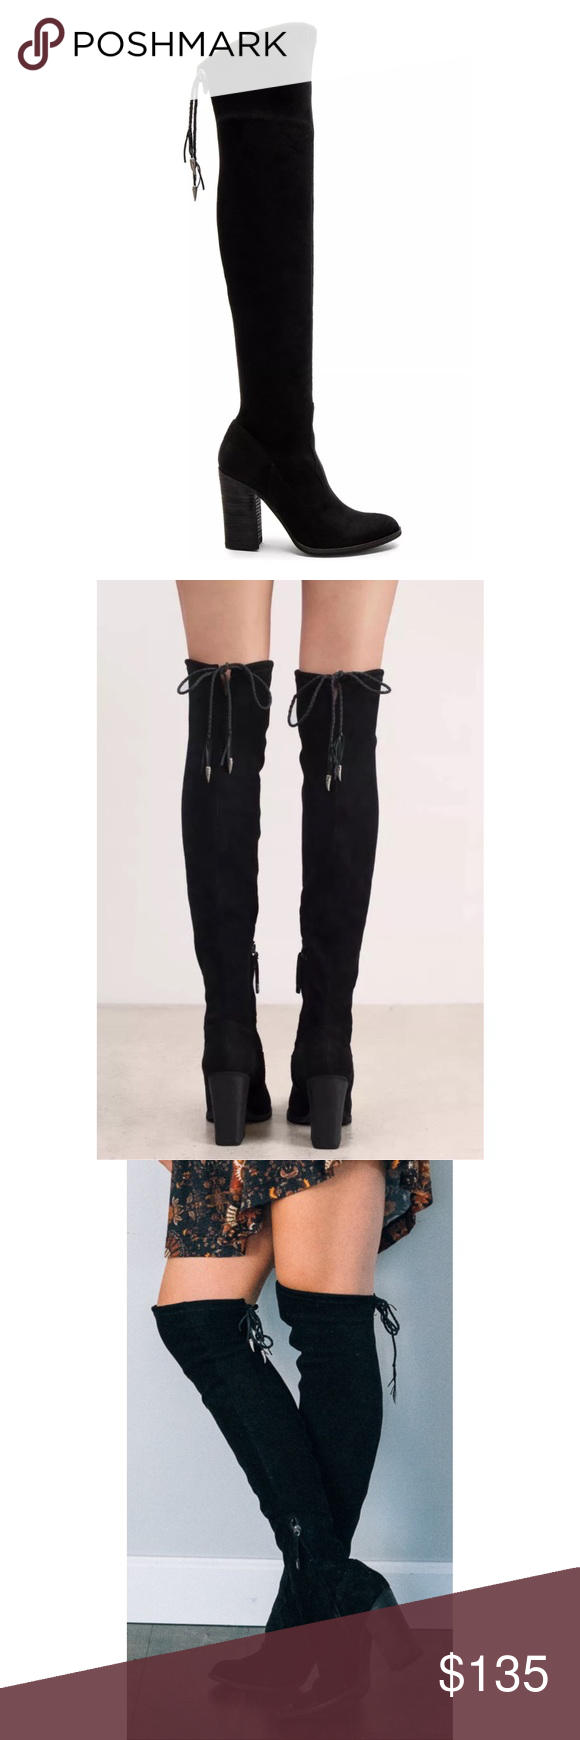 903fd78e610 DV Dolce Vita CHANCE OTK over the knee boots black great condition with  light signs of